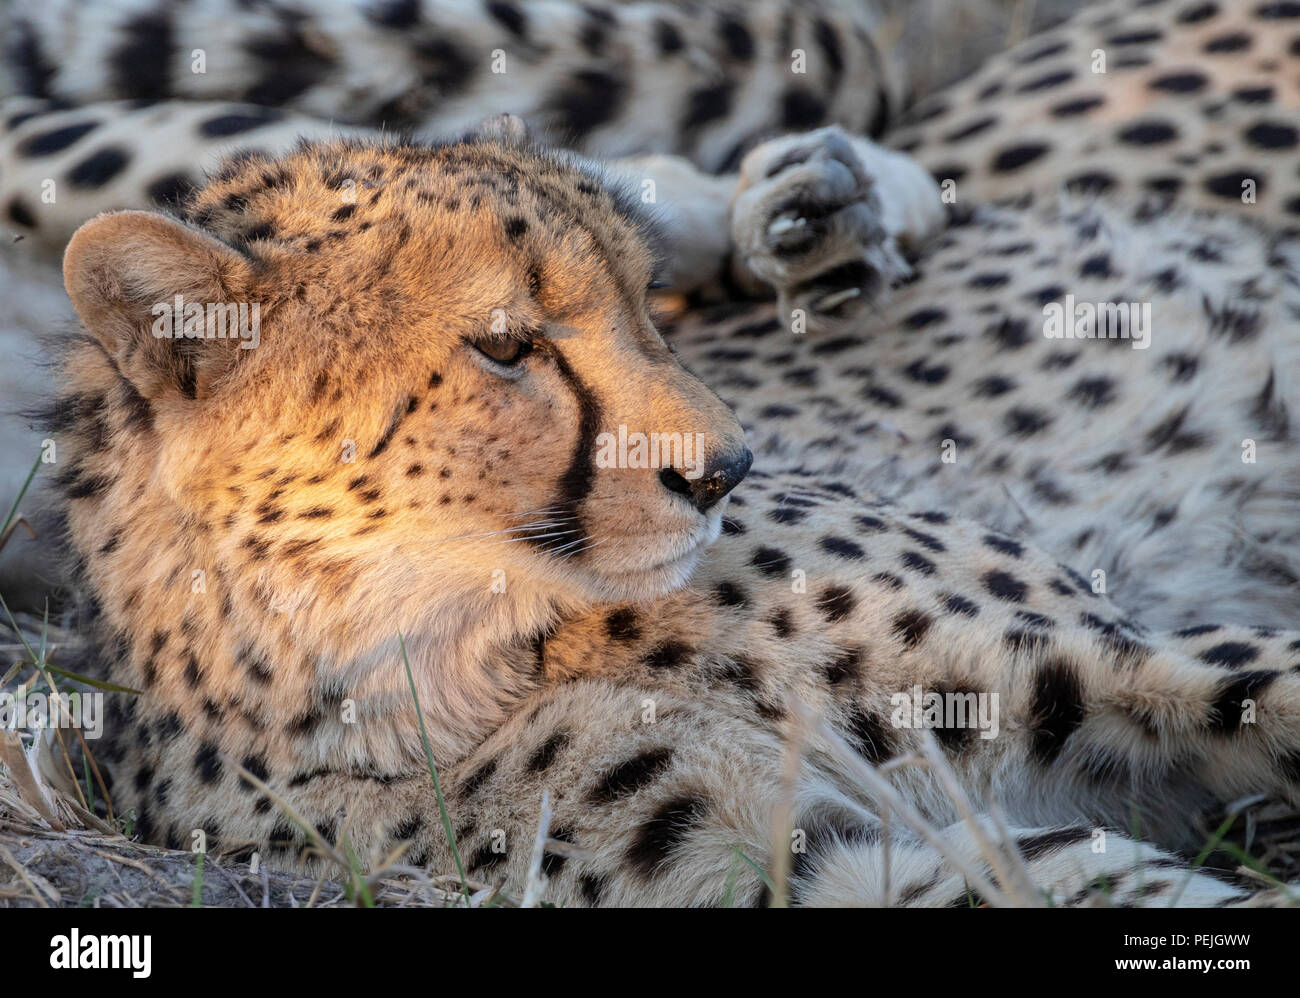 Cheetah resting in shade with head lit by isolated rays of late afternoon sun, Okavango Delta, Botswana - Stock Image